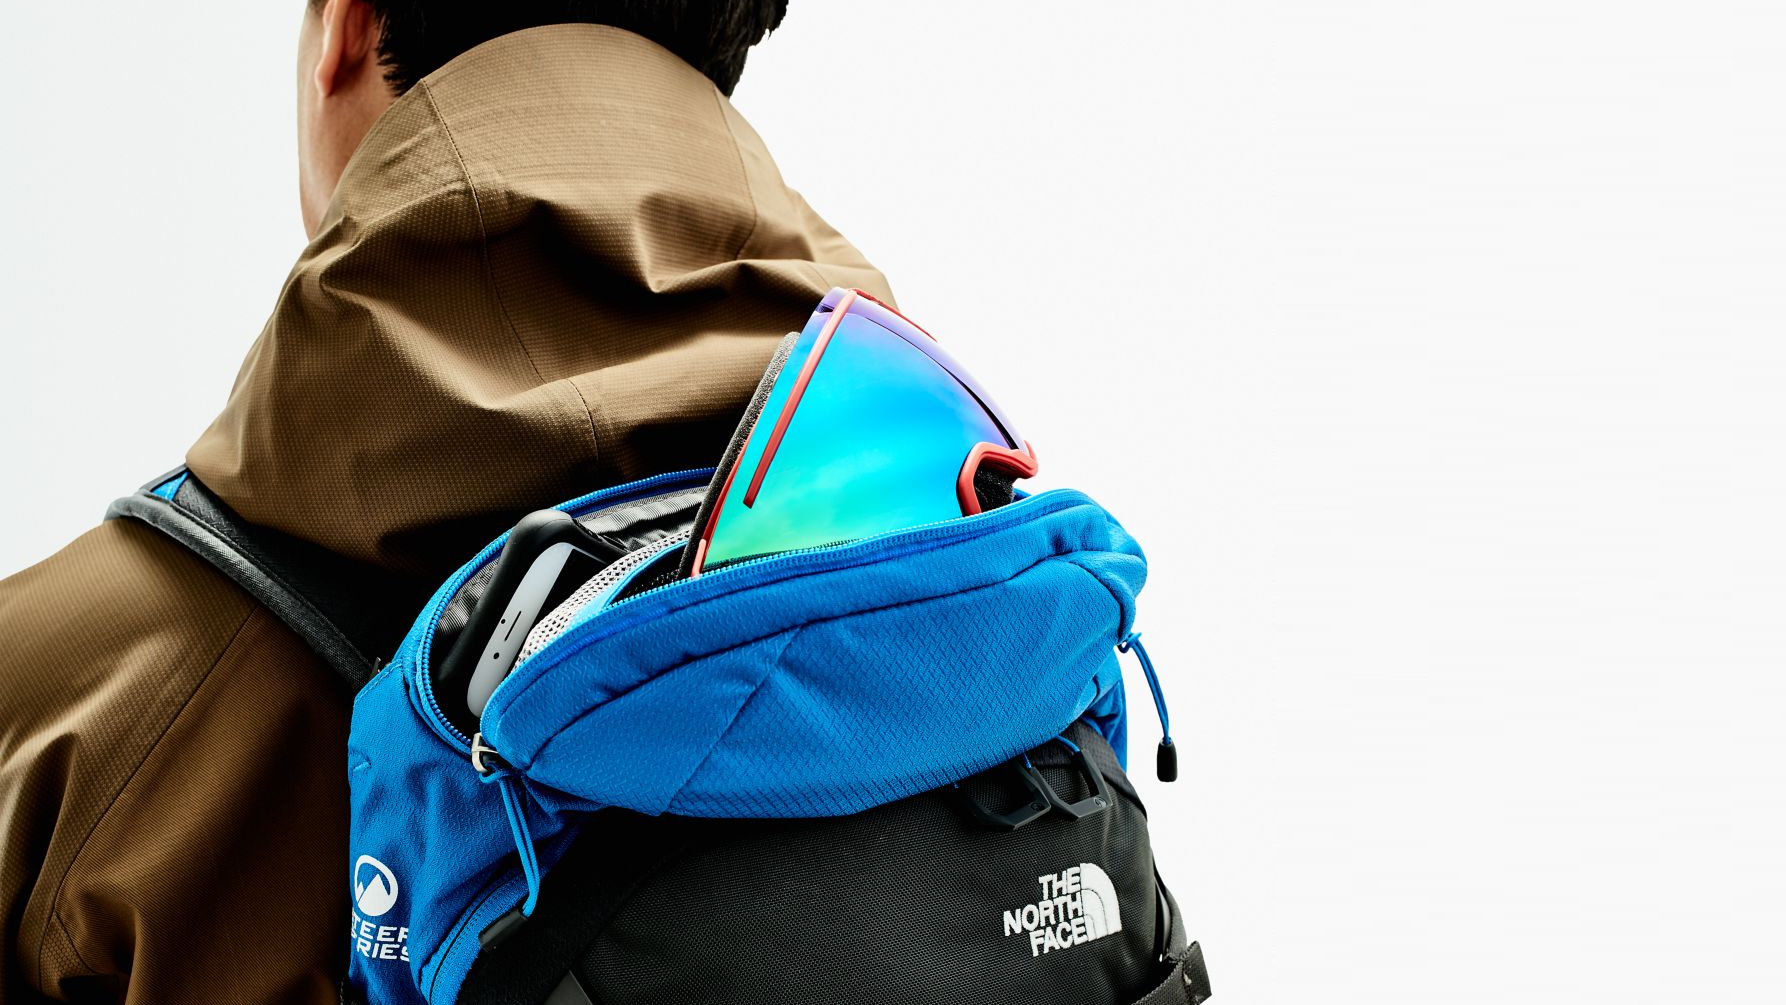 c0607ba5e The North Face Snowmad 26 Pack | POWDER MAGAZINE